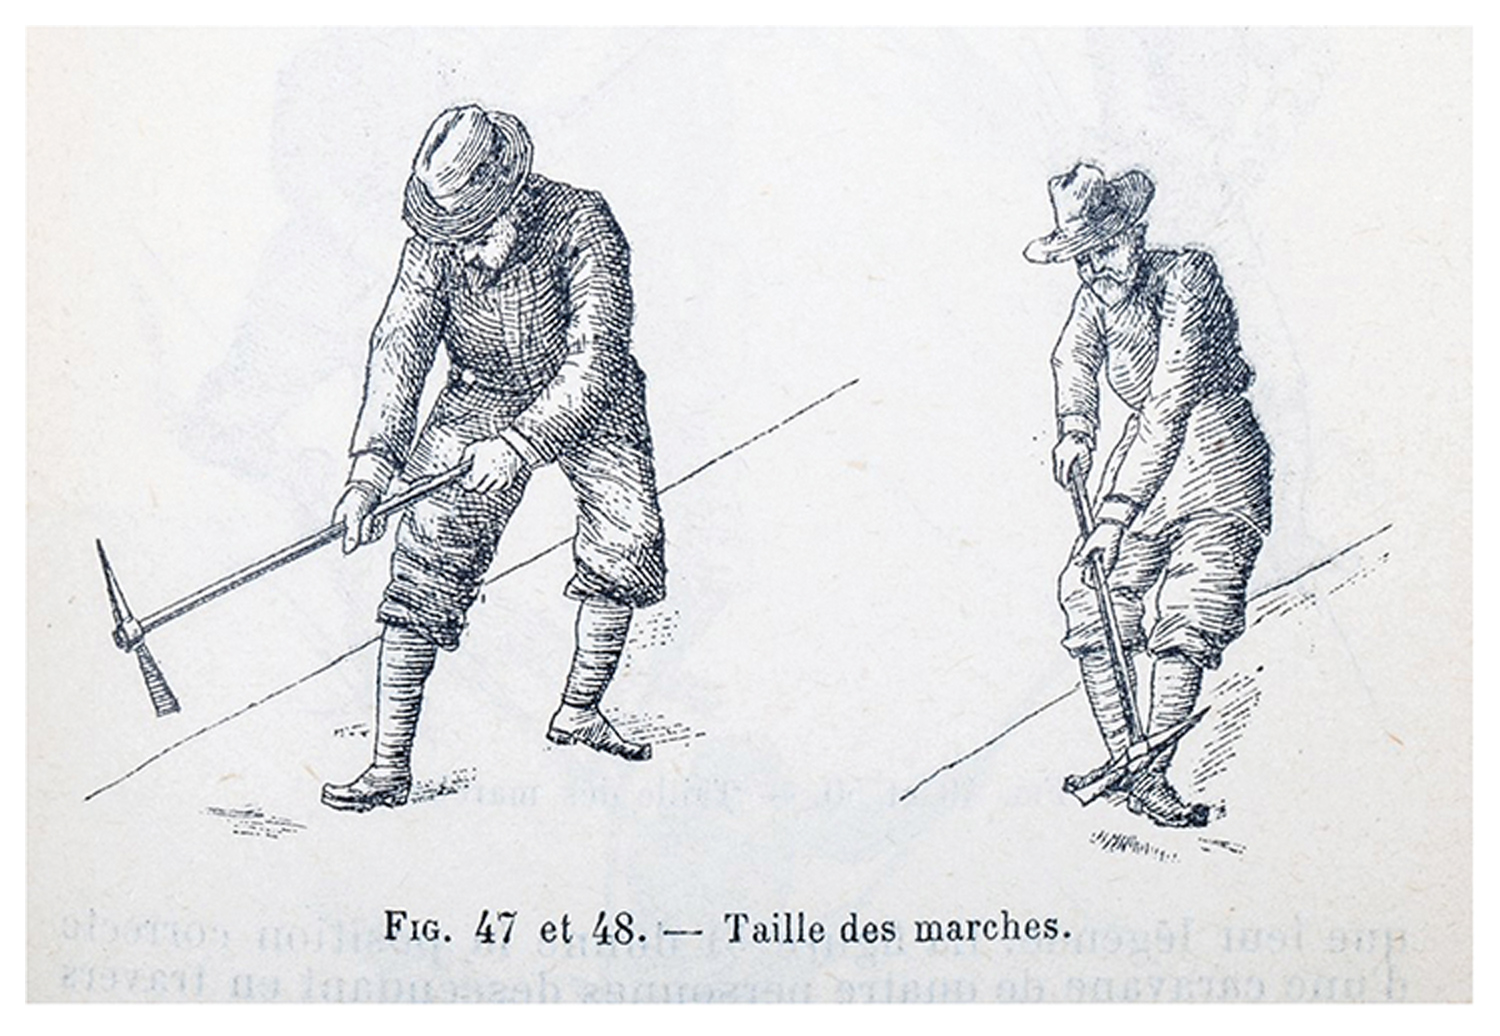 A drawing of early ice climbers using ice axes to cut steps for ice climbing and mountaineering